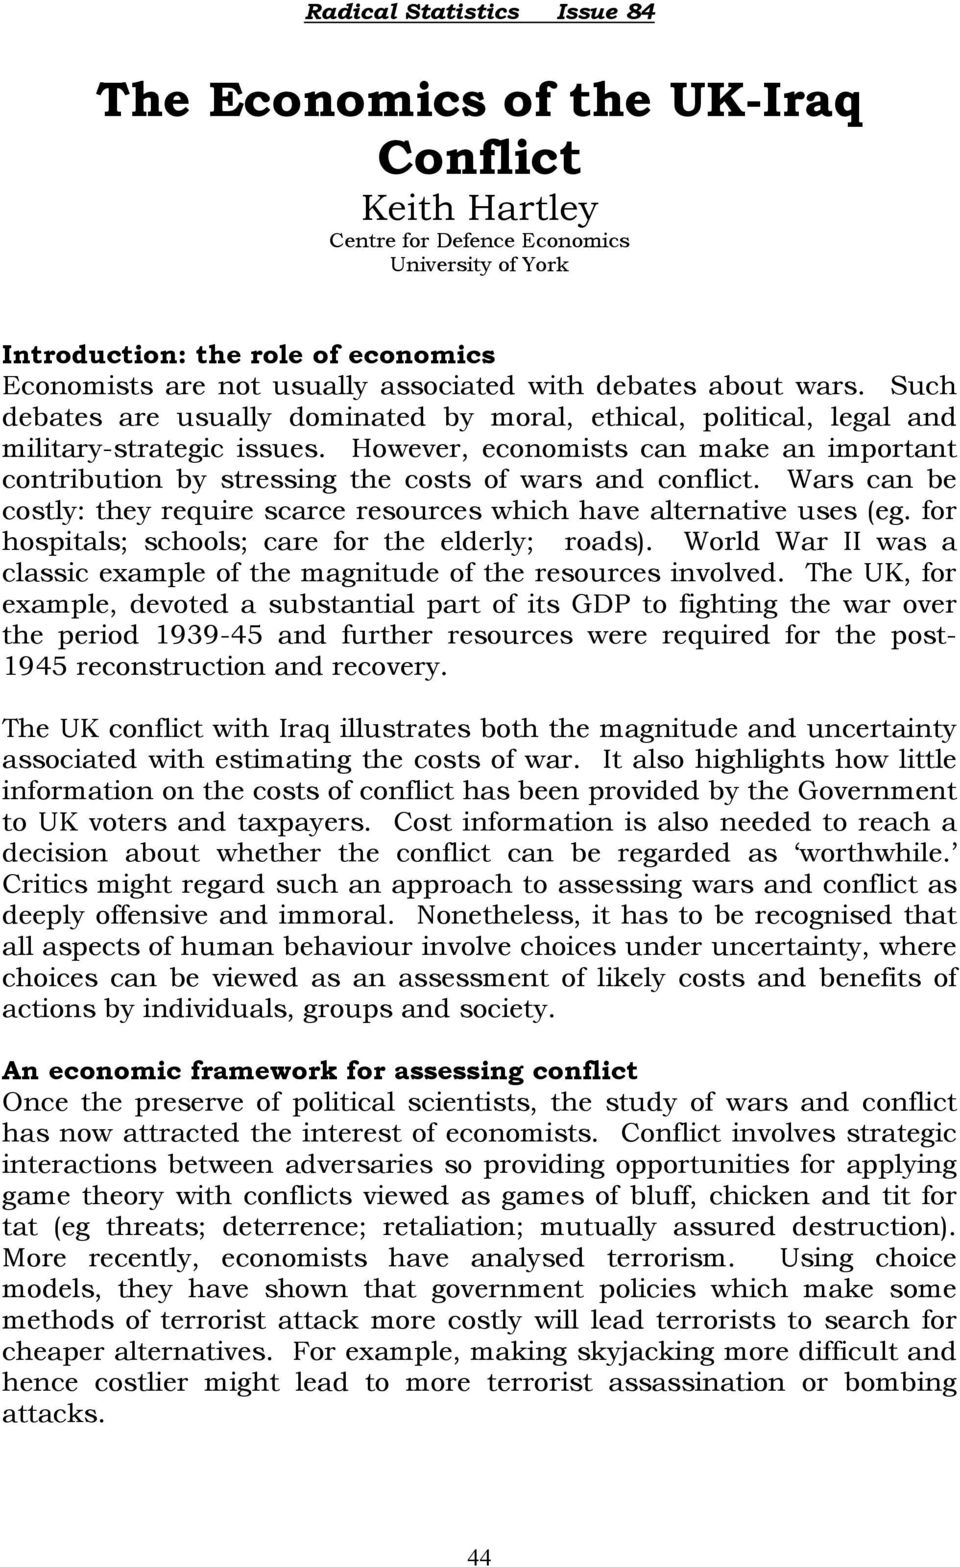 However, economists can make an important contribution by stressing the costs of wars and conflict. Wars can be costly: they require scarce resources which have alternative uses (eg.